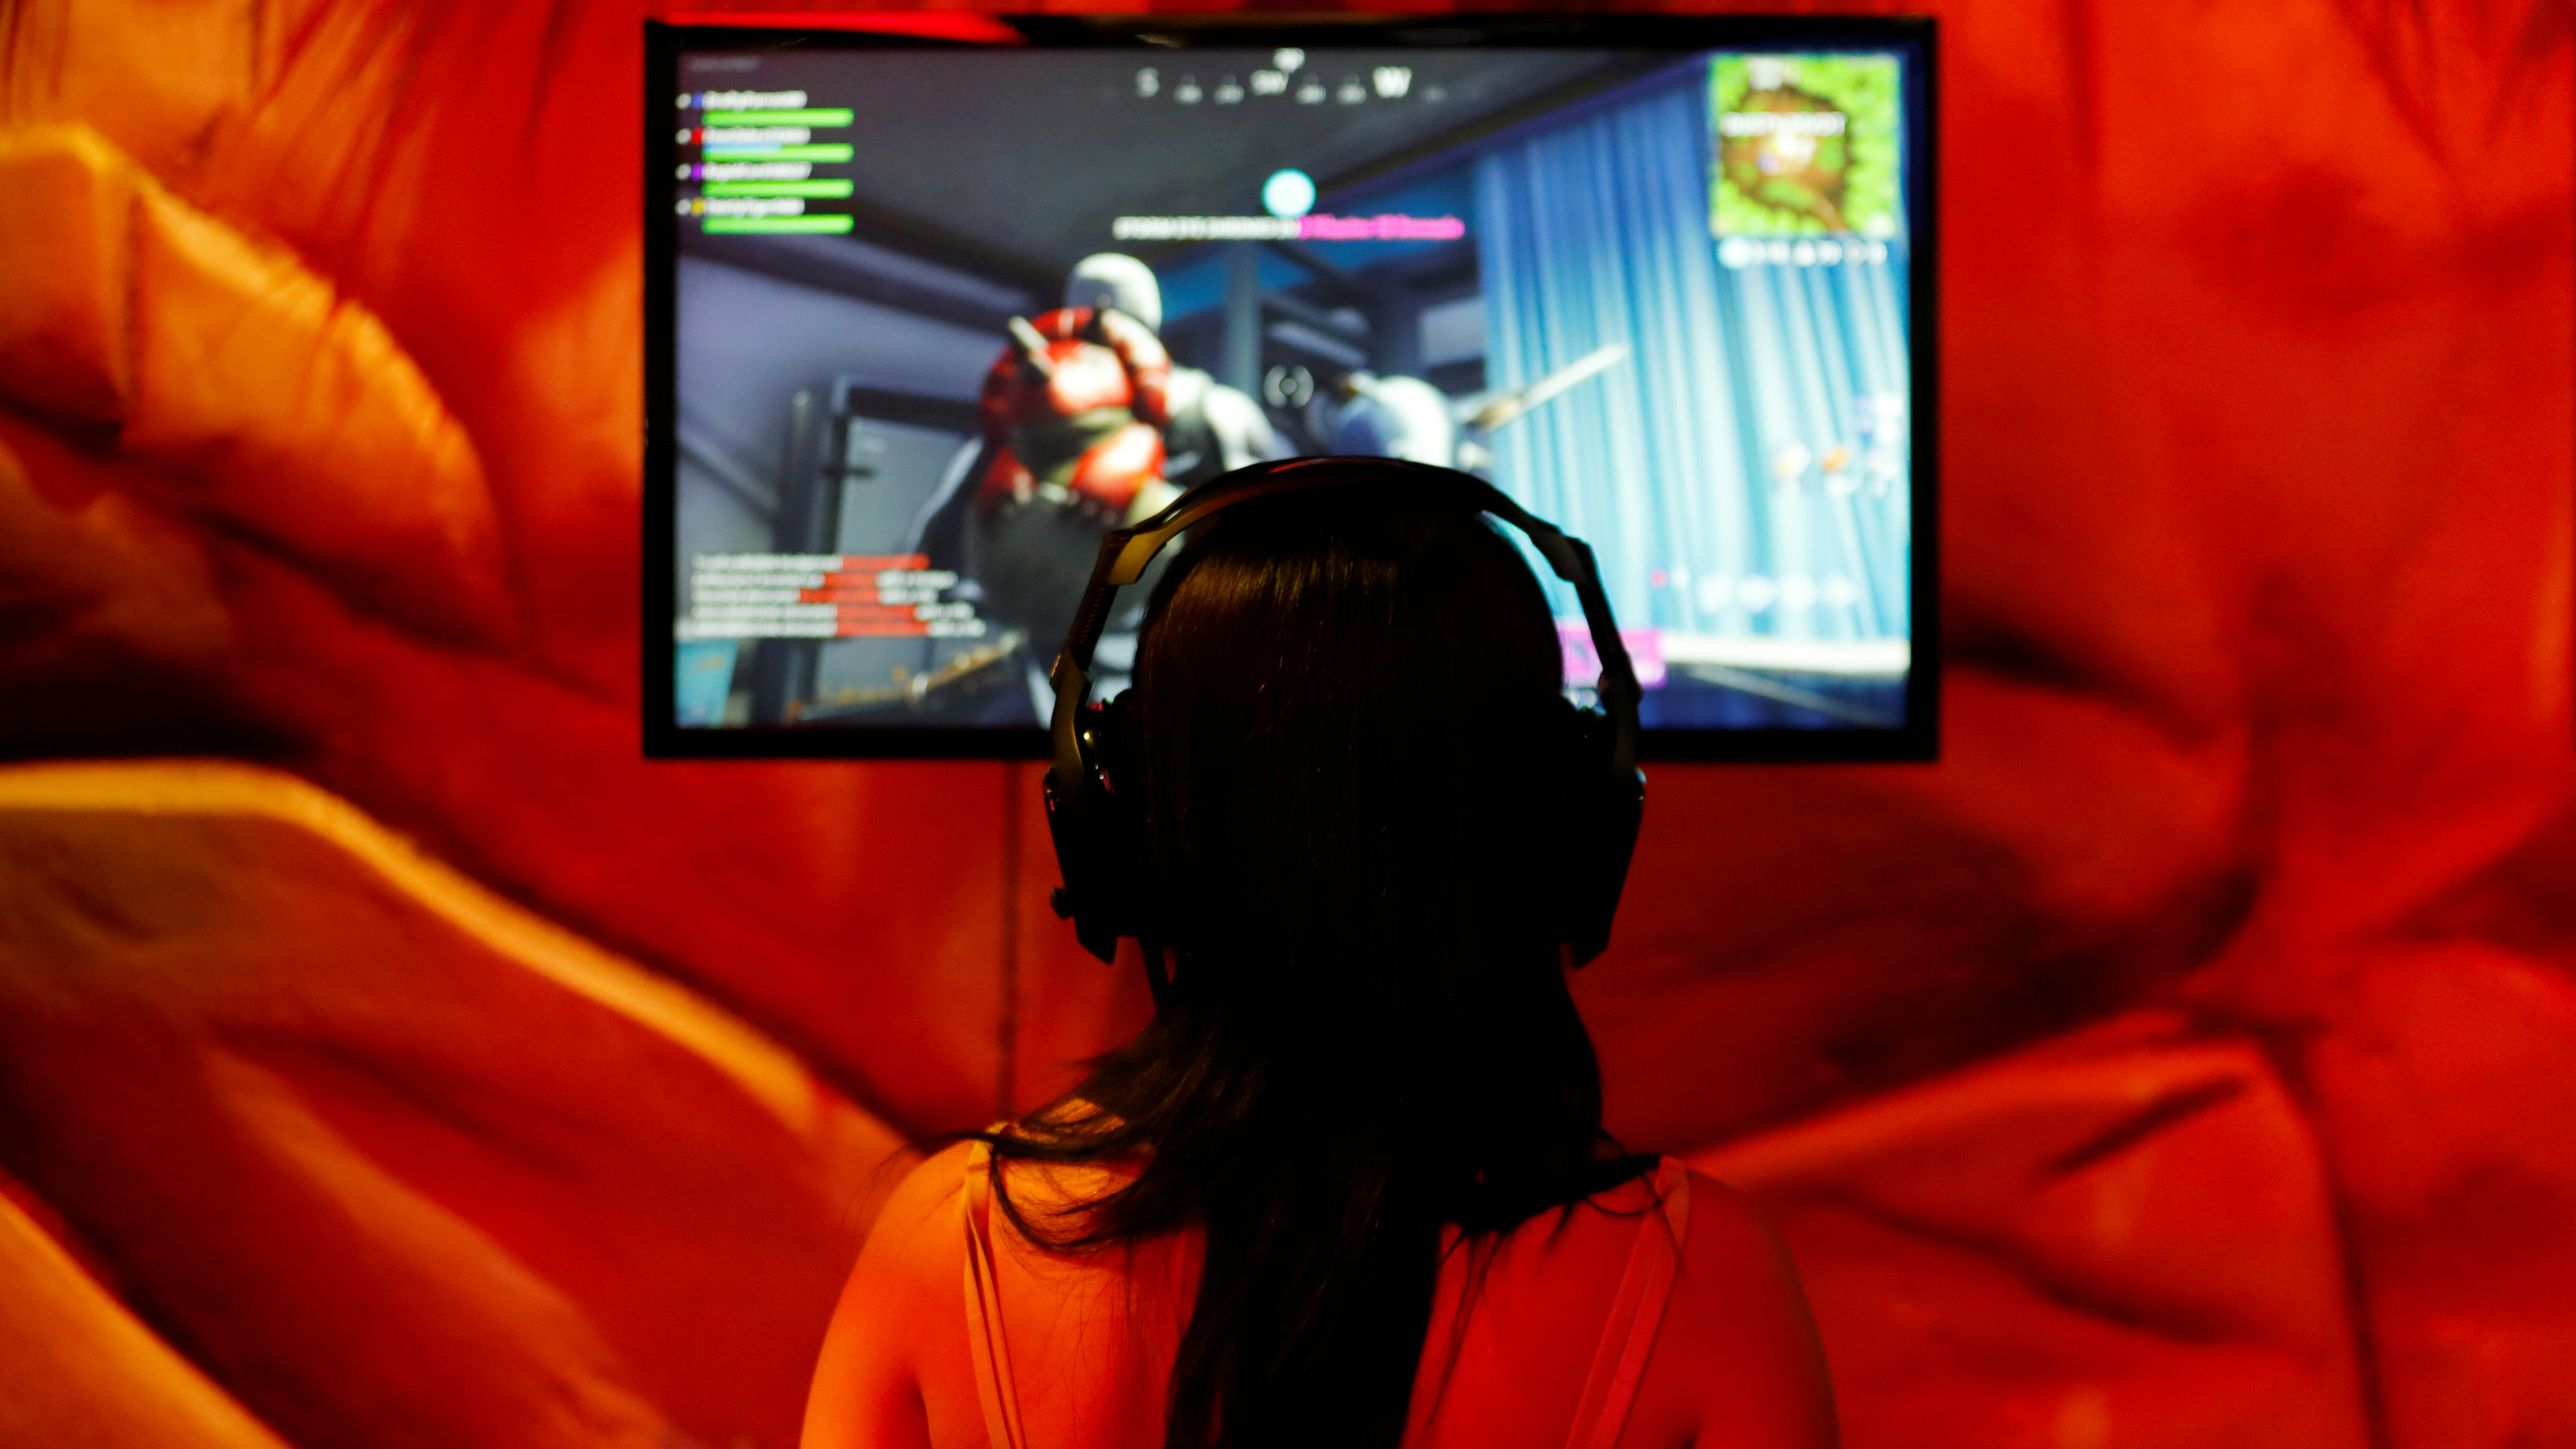 A person playing a video game